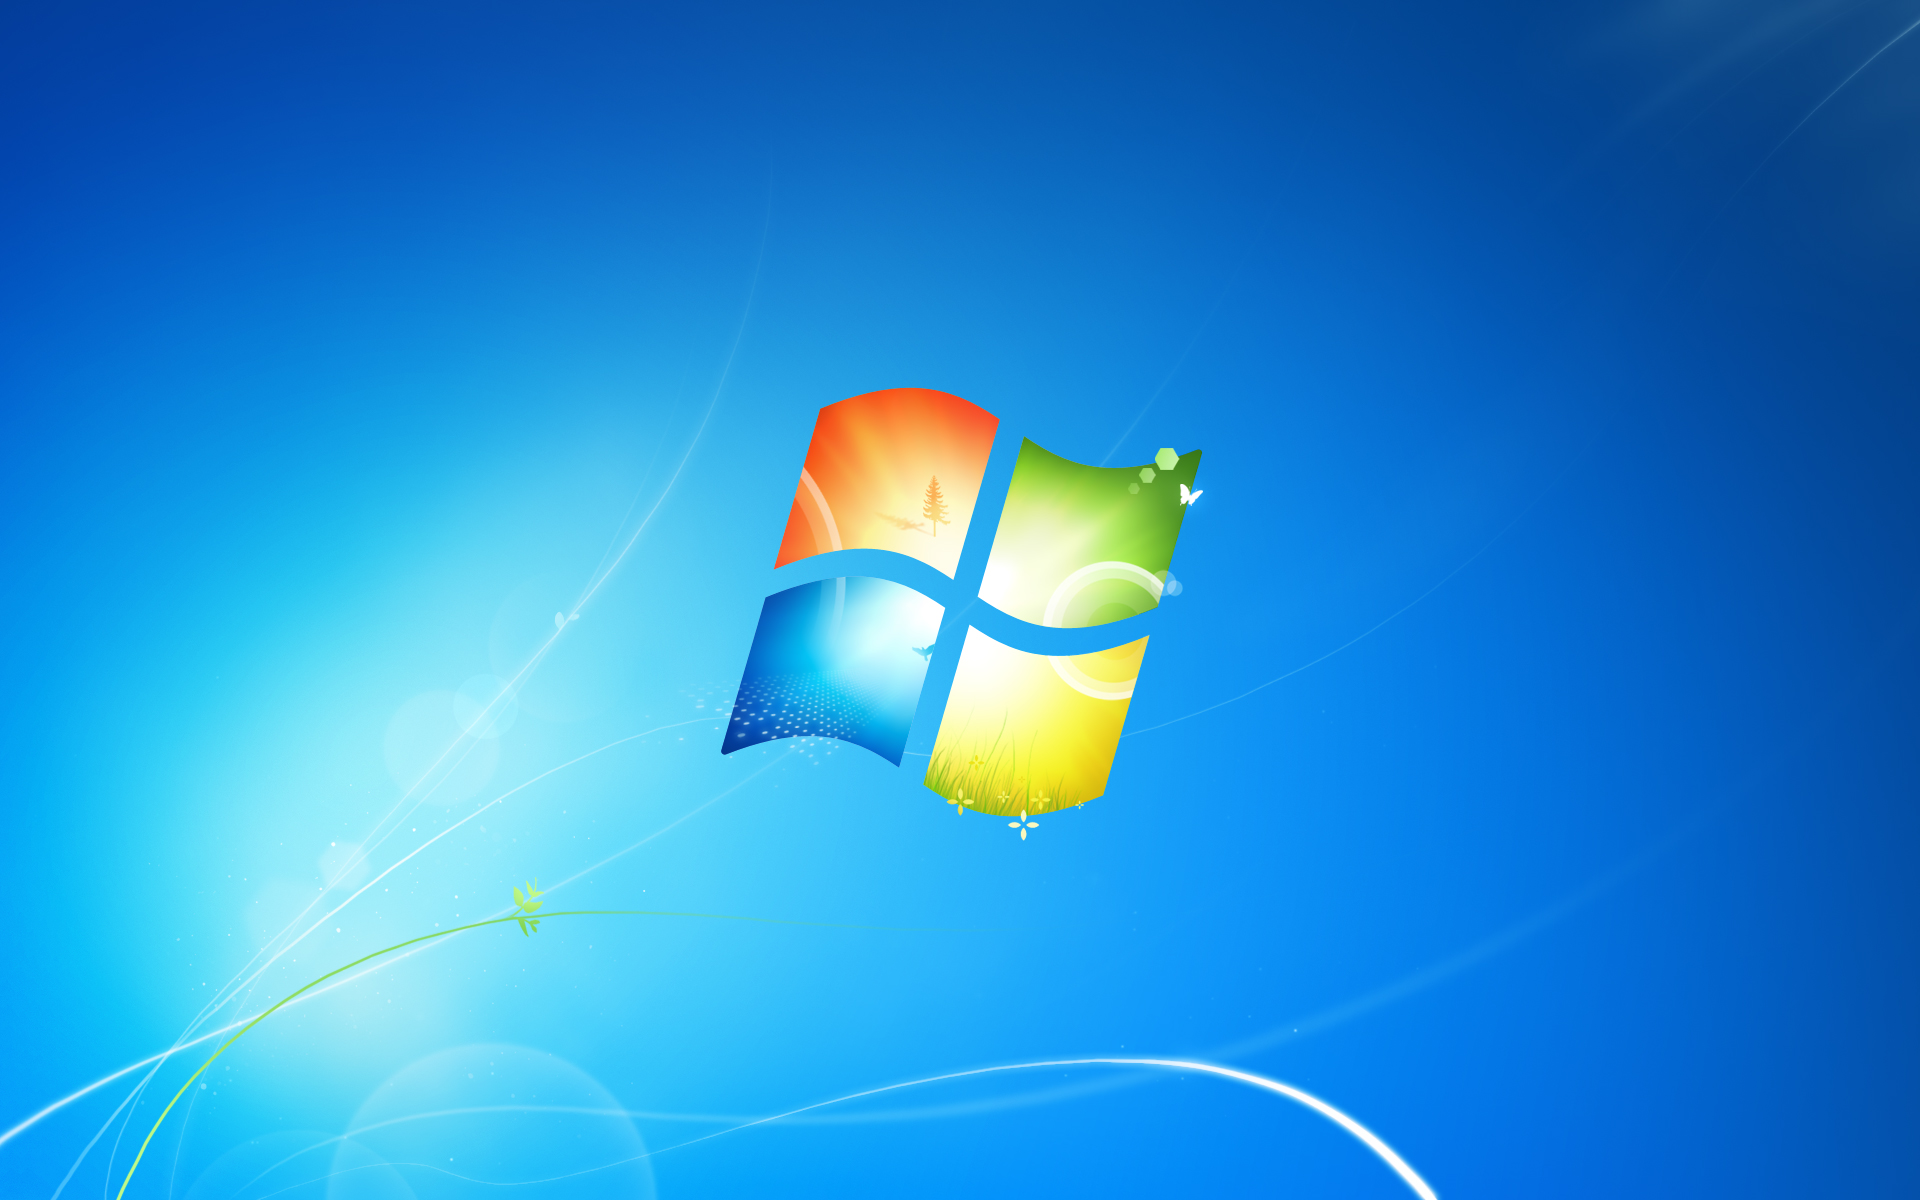 The new windows 7 wallpaper hd wallpapers for New to windows